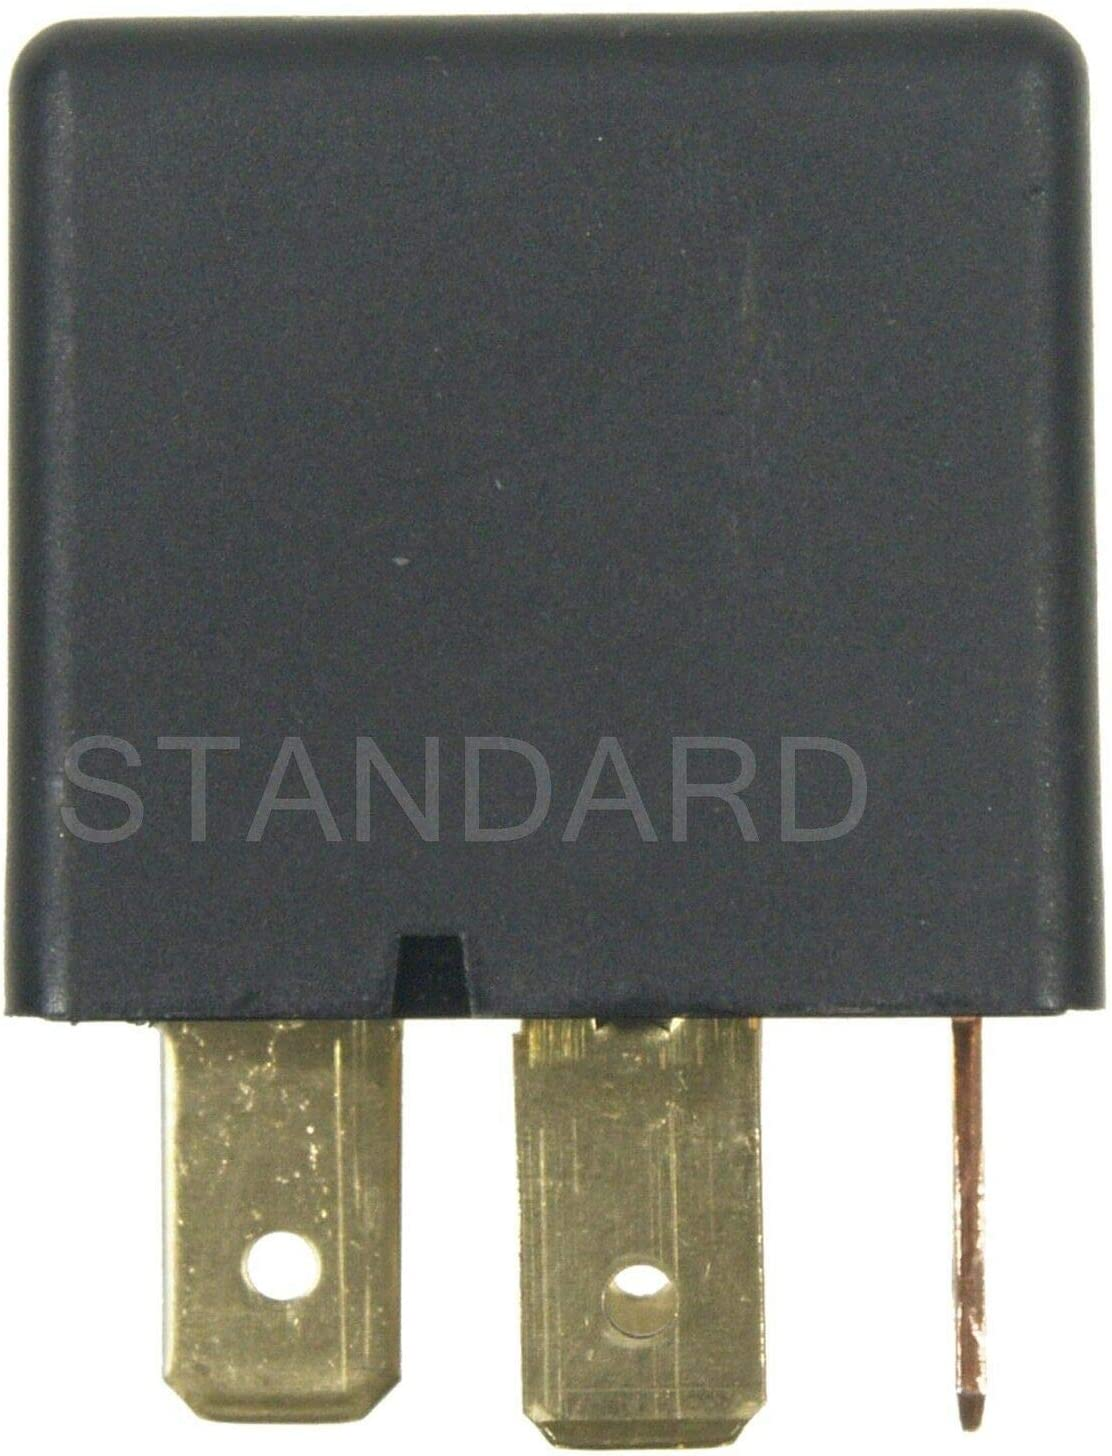 Standard Motor Products RY-876 Window Relay